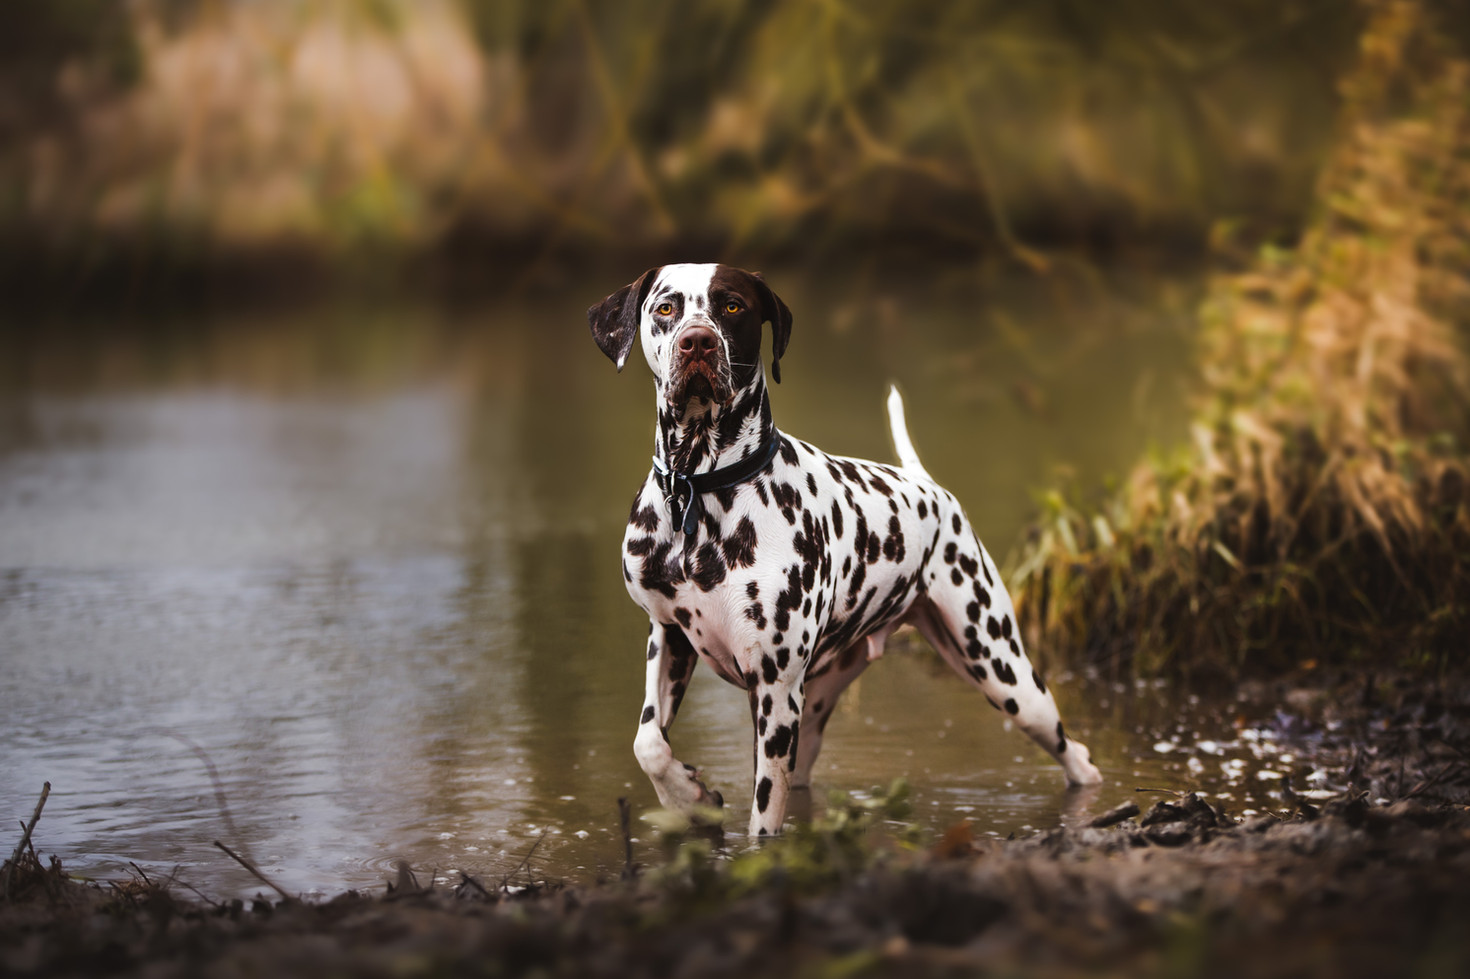 Dalmation in River